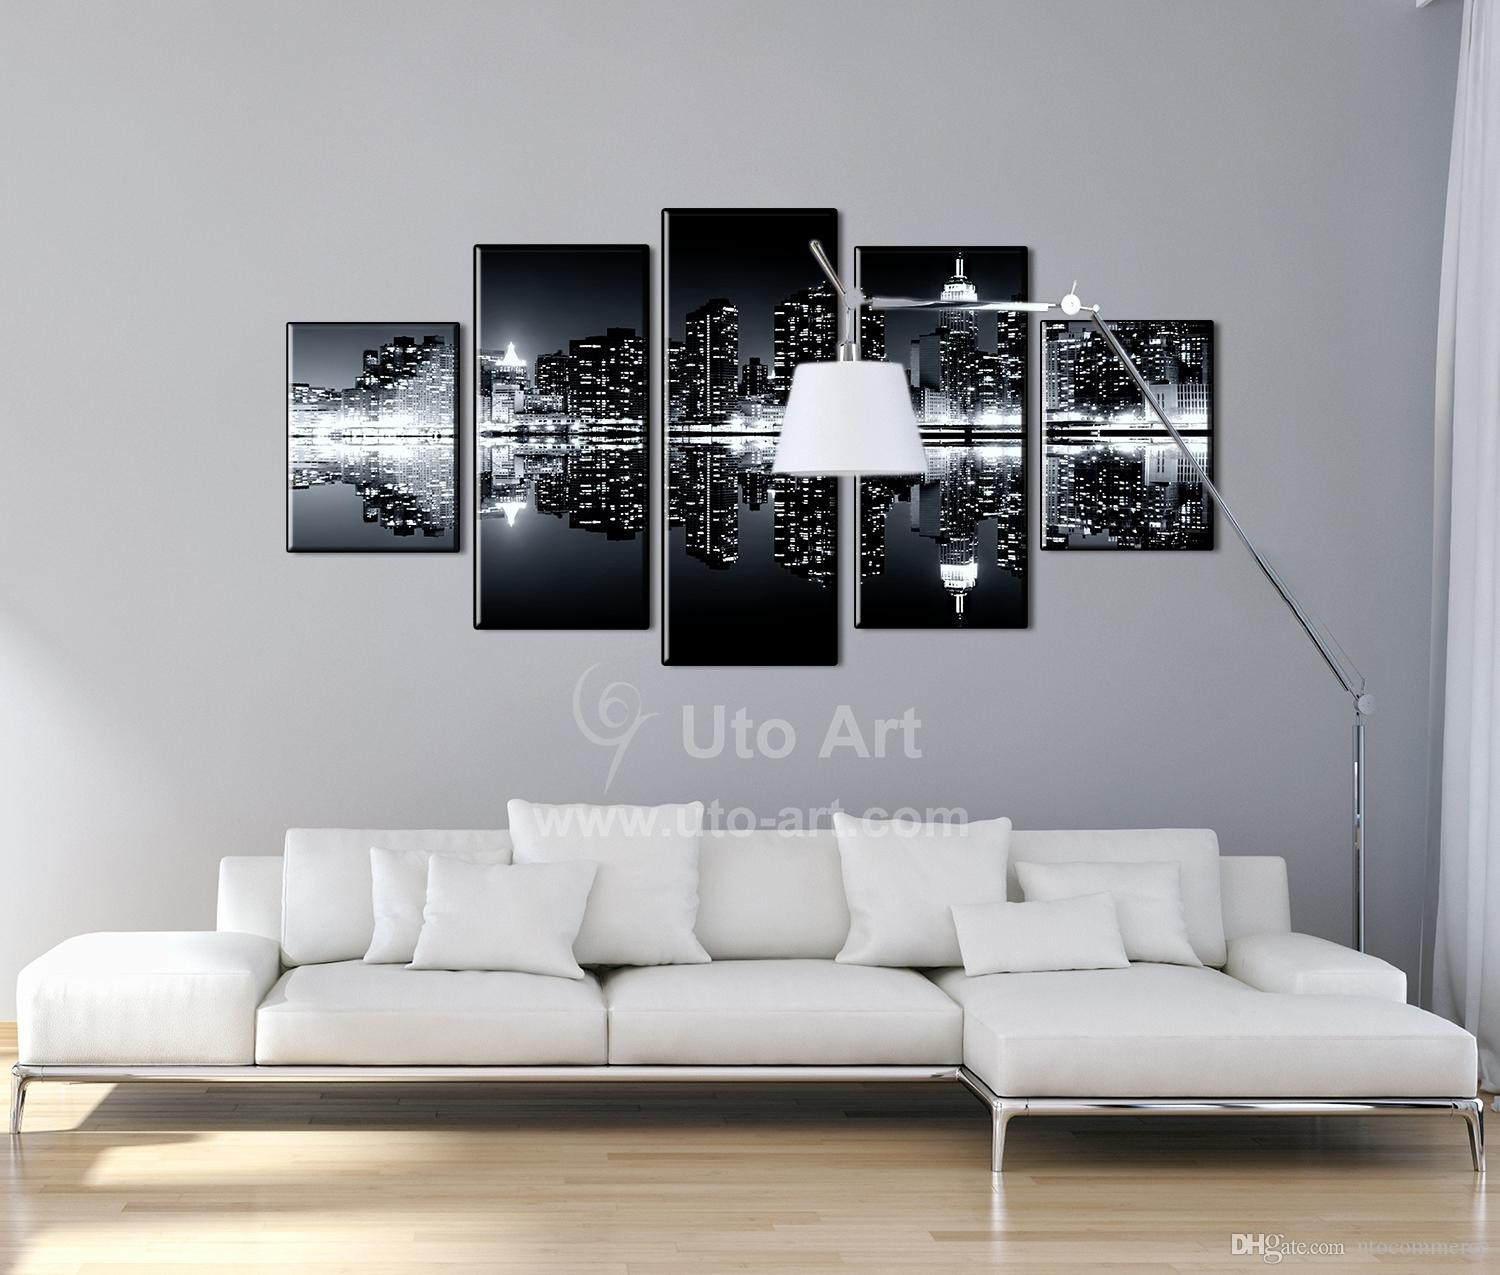 2018 Multi Panel Black Wall Decoration Inverted Image Canvas In 2018 Ku Canvas Wall Art (View 3 of 15)